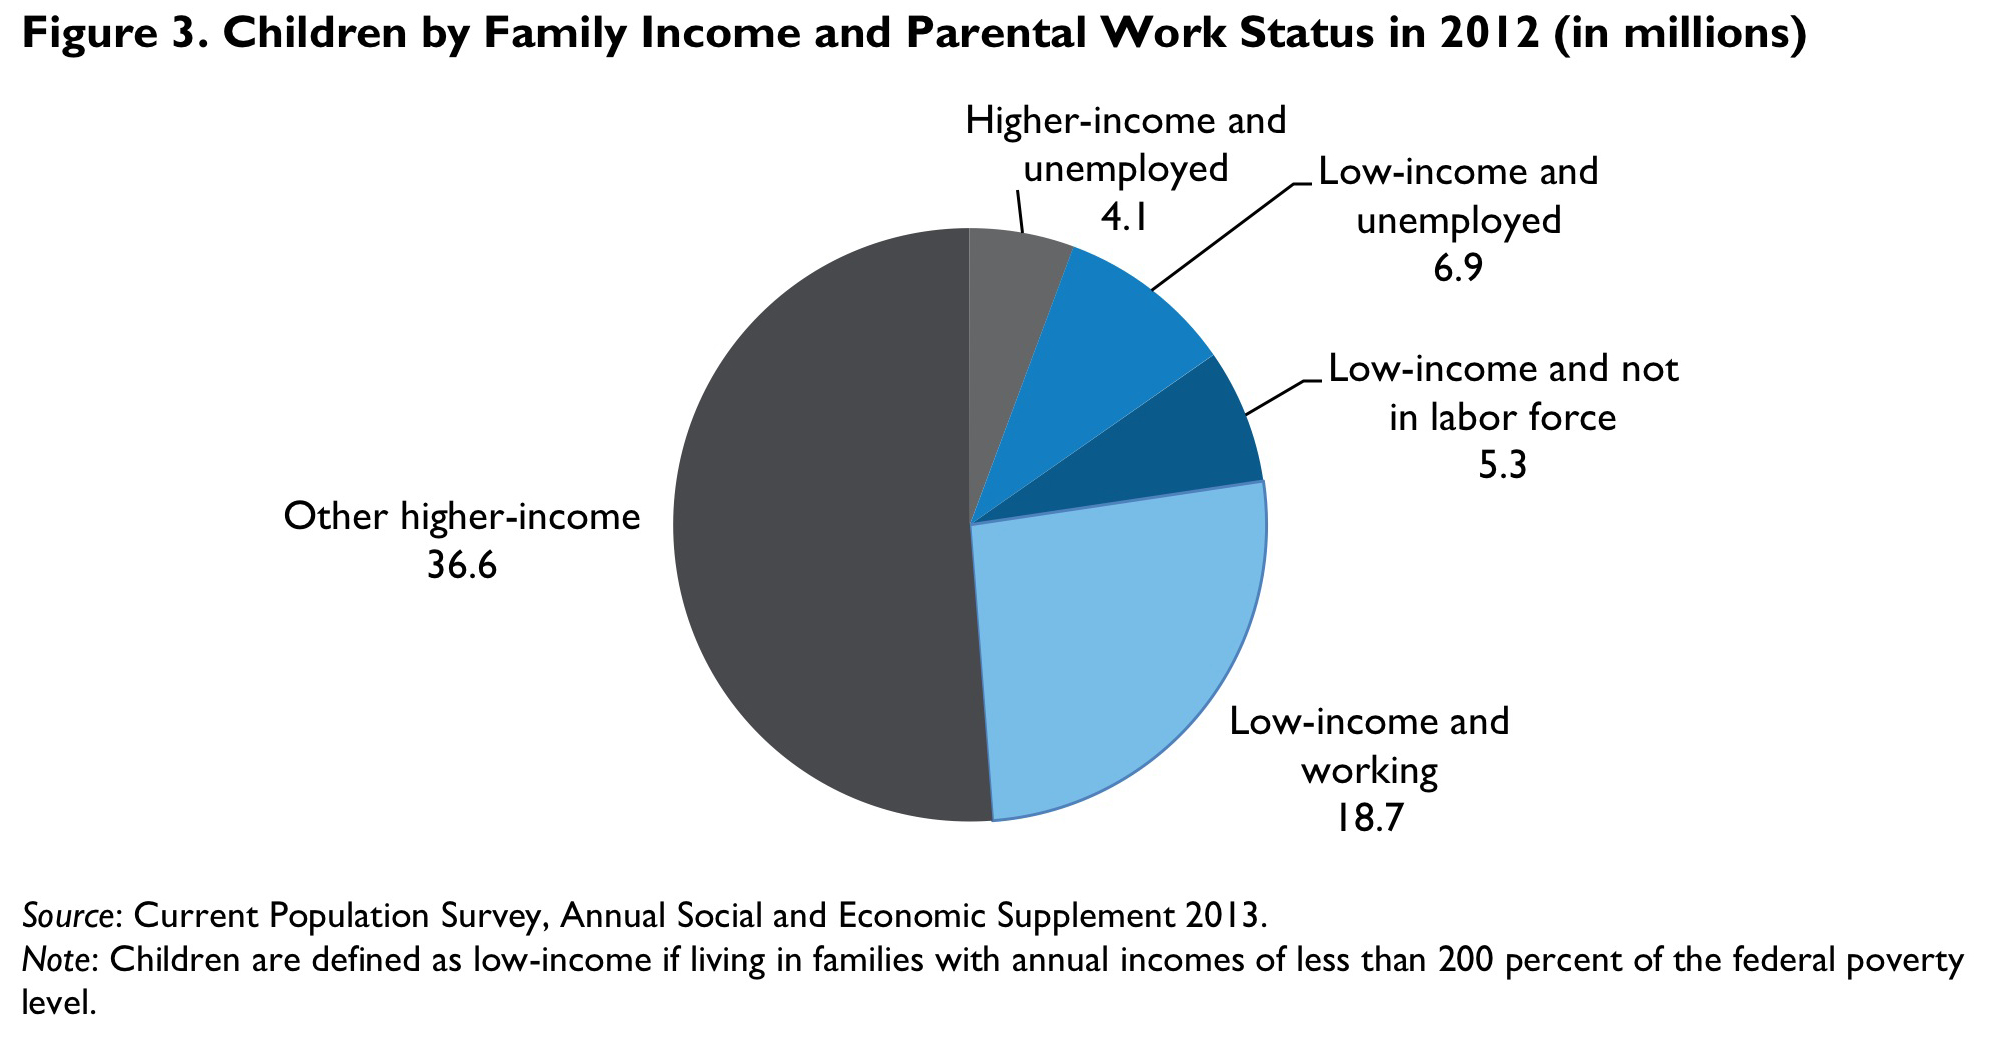 Figure 3. Children by Family Income and Parental Work Status in 2012 (in millions)